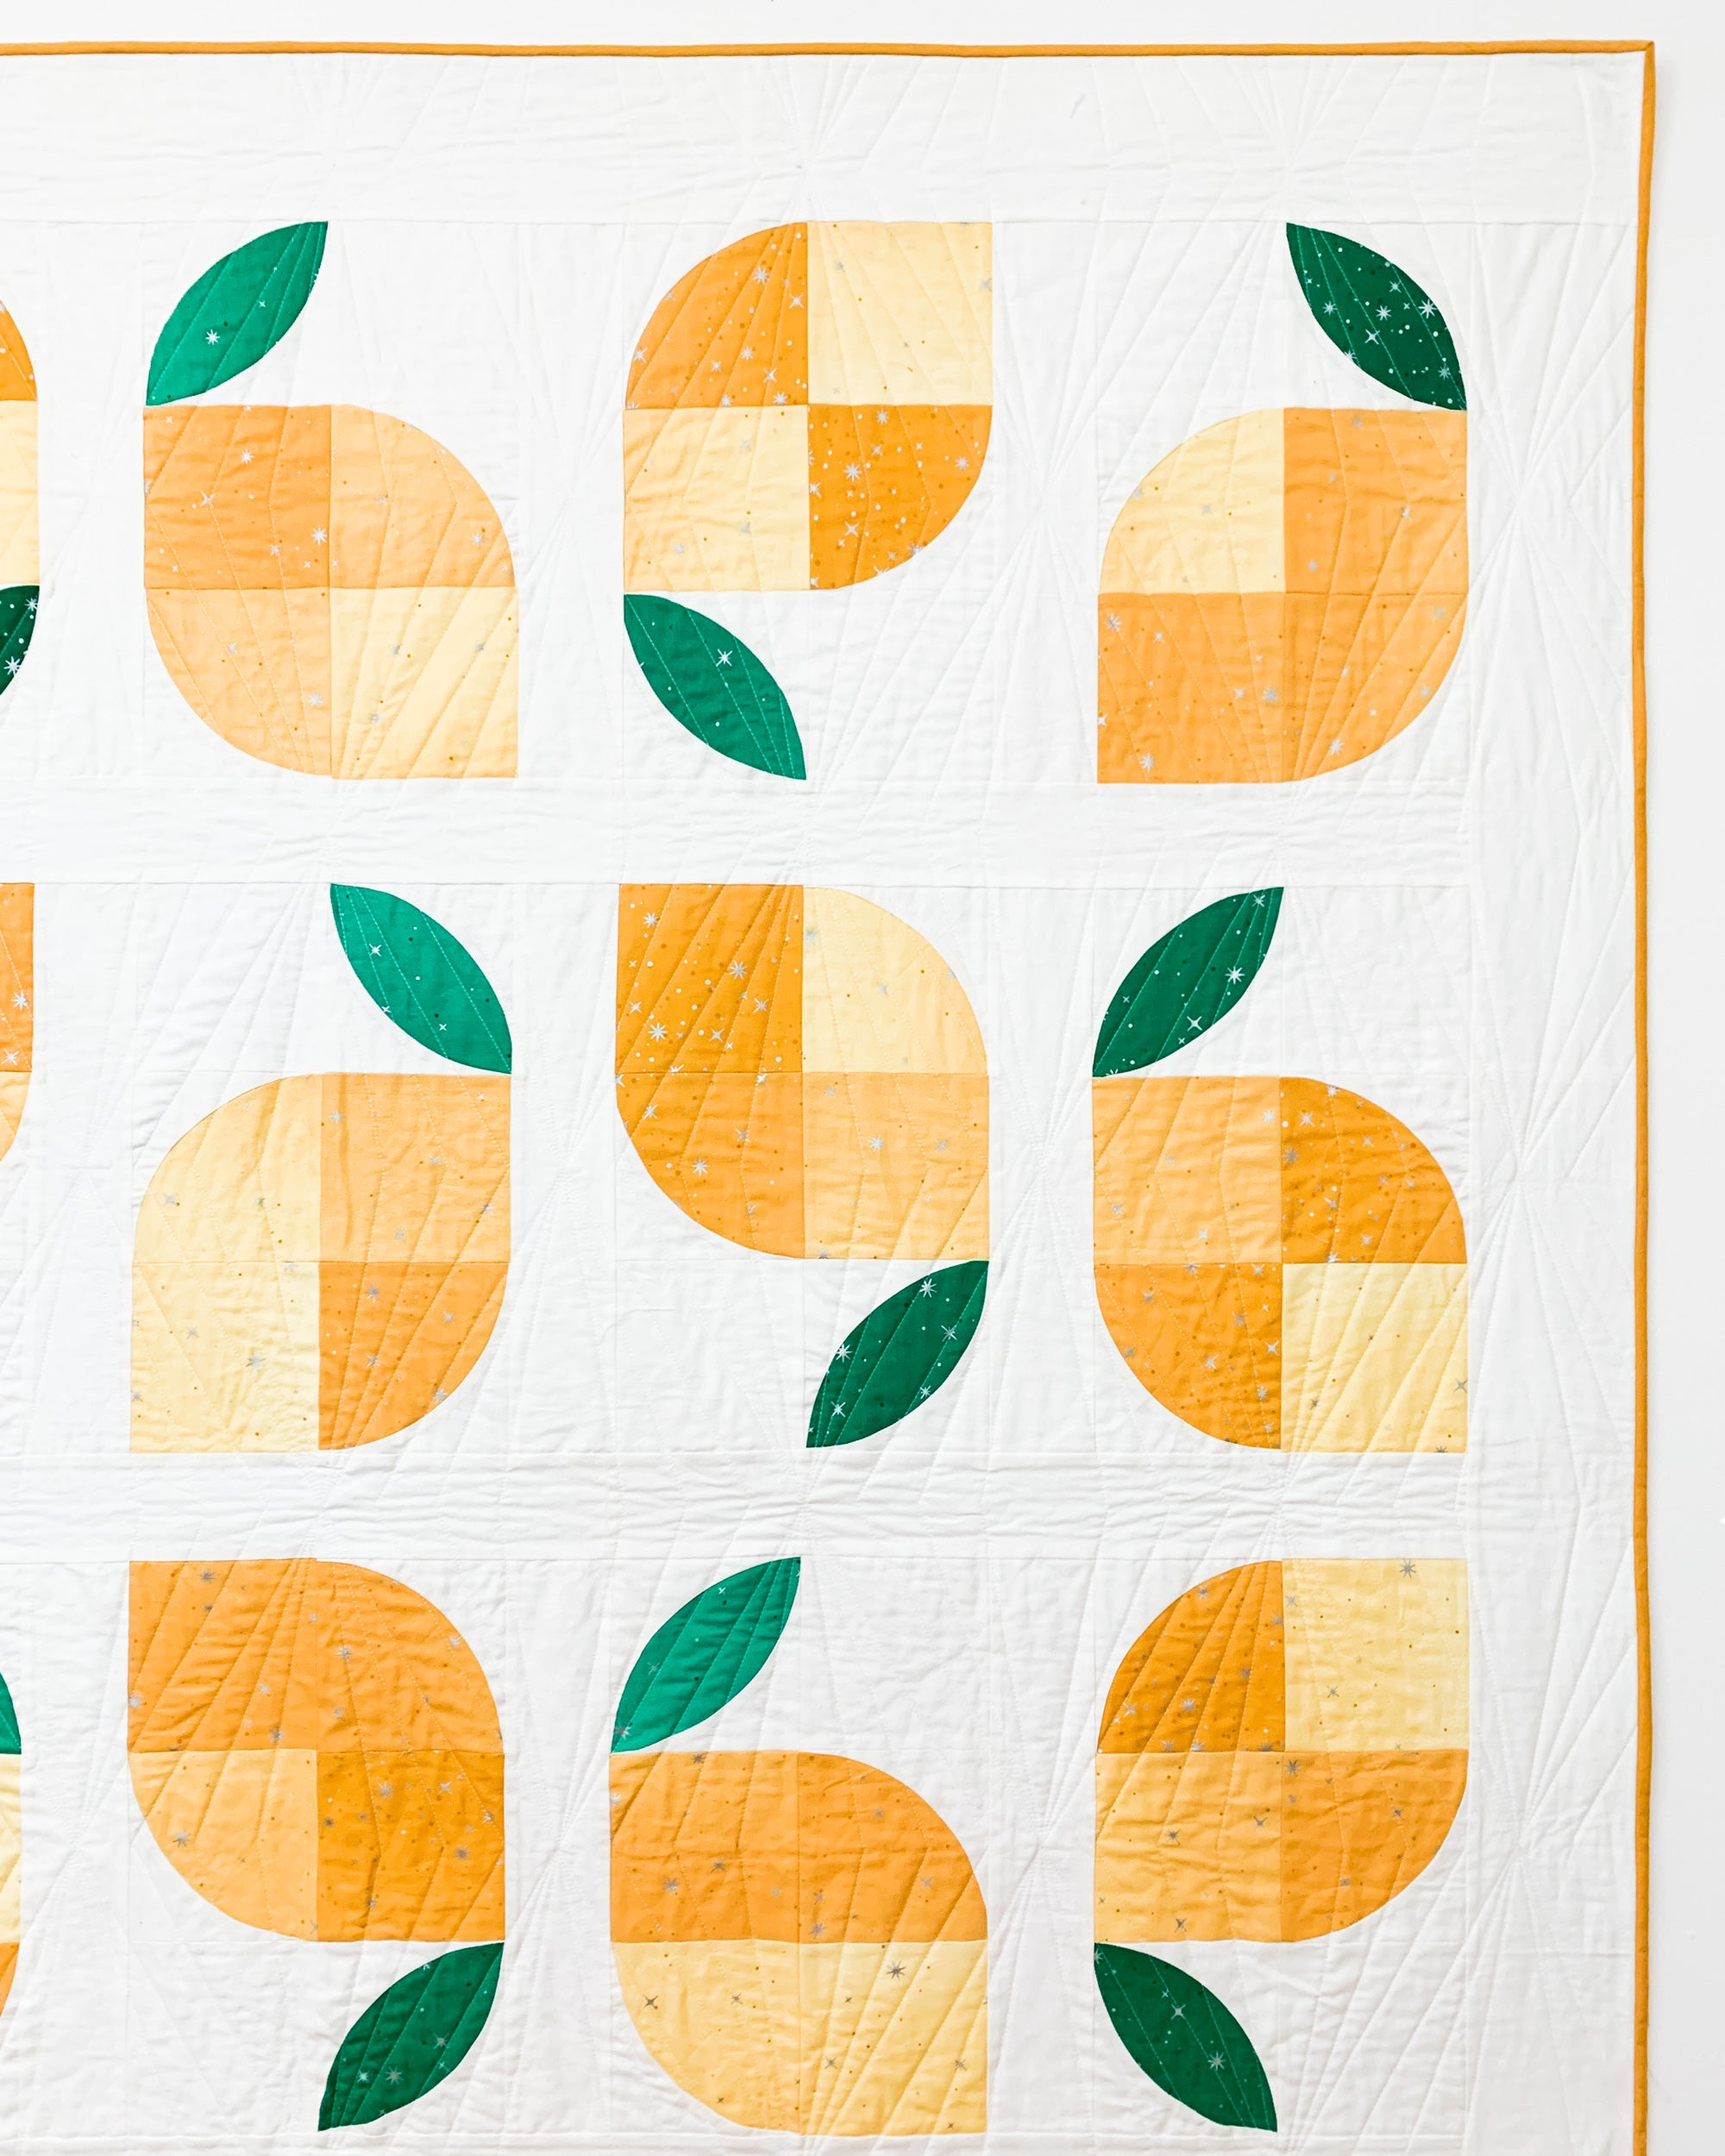 Quilting on a lemon quilt